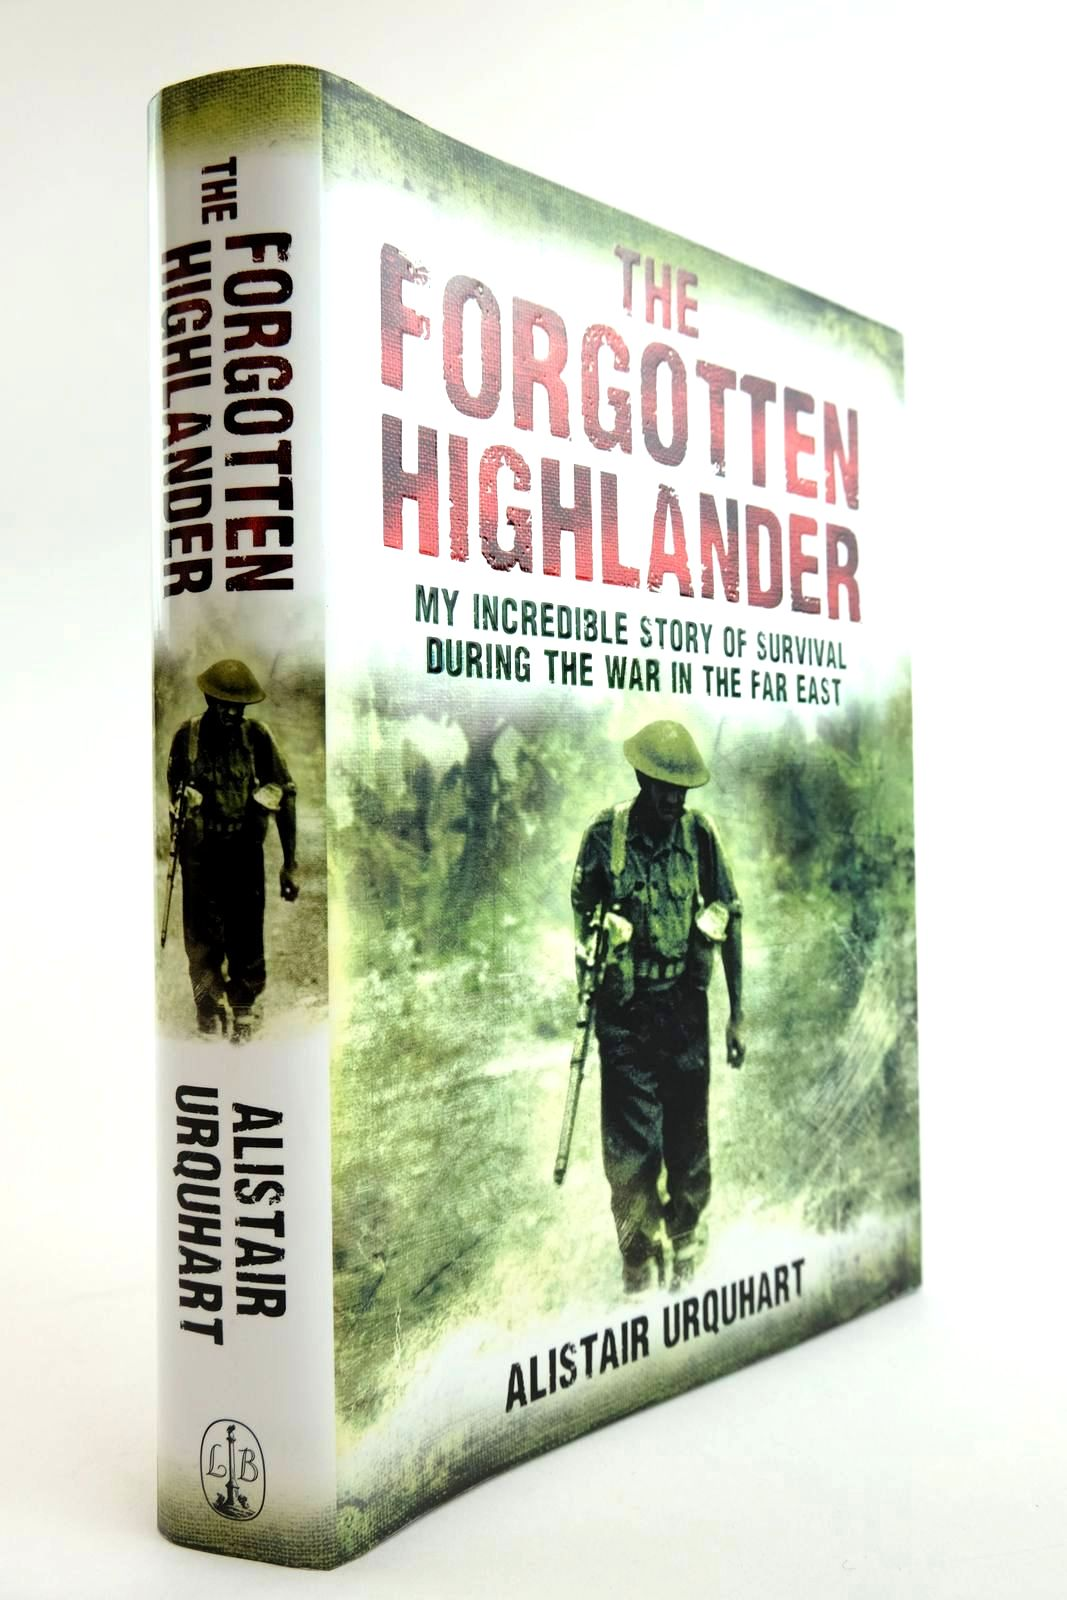 Photo of THE FORGOTTEN HIGHLANDER written by Urquhart, Alistair published by Little Brown (STOCK CODE: 2133432)  for sale by Stella & Rose's Books